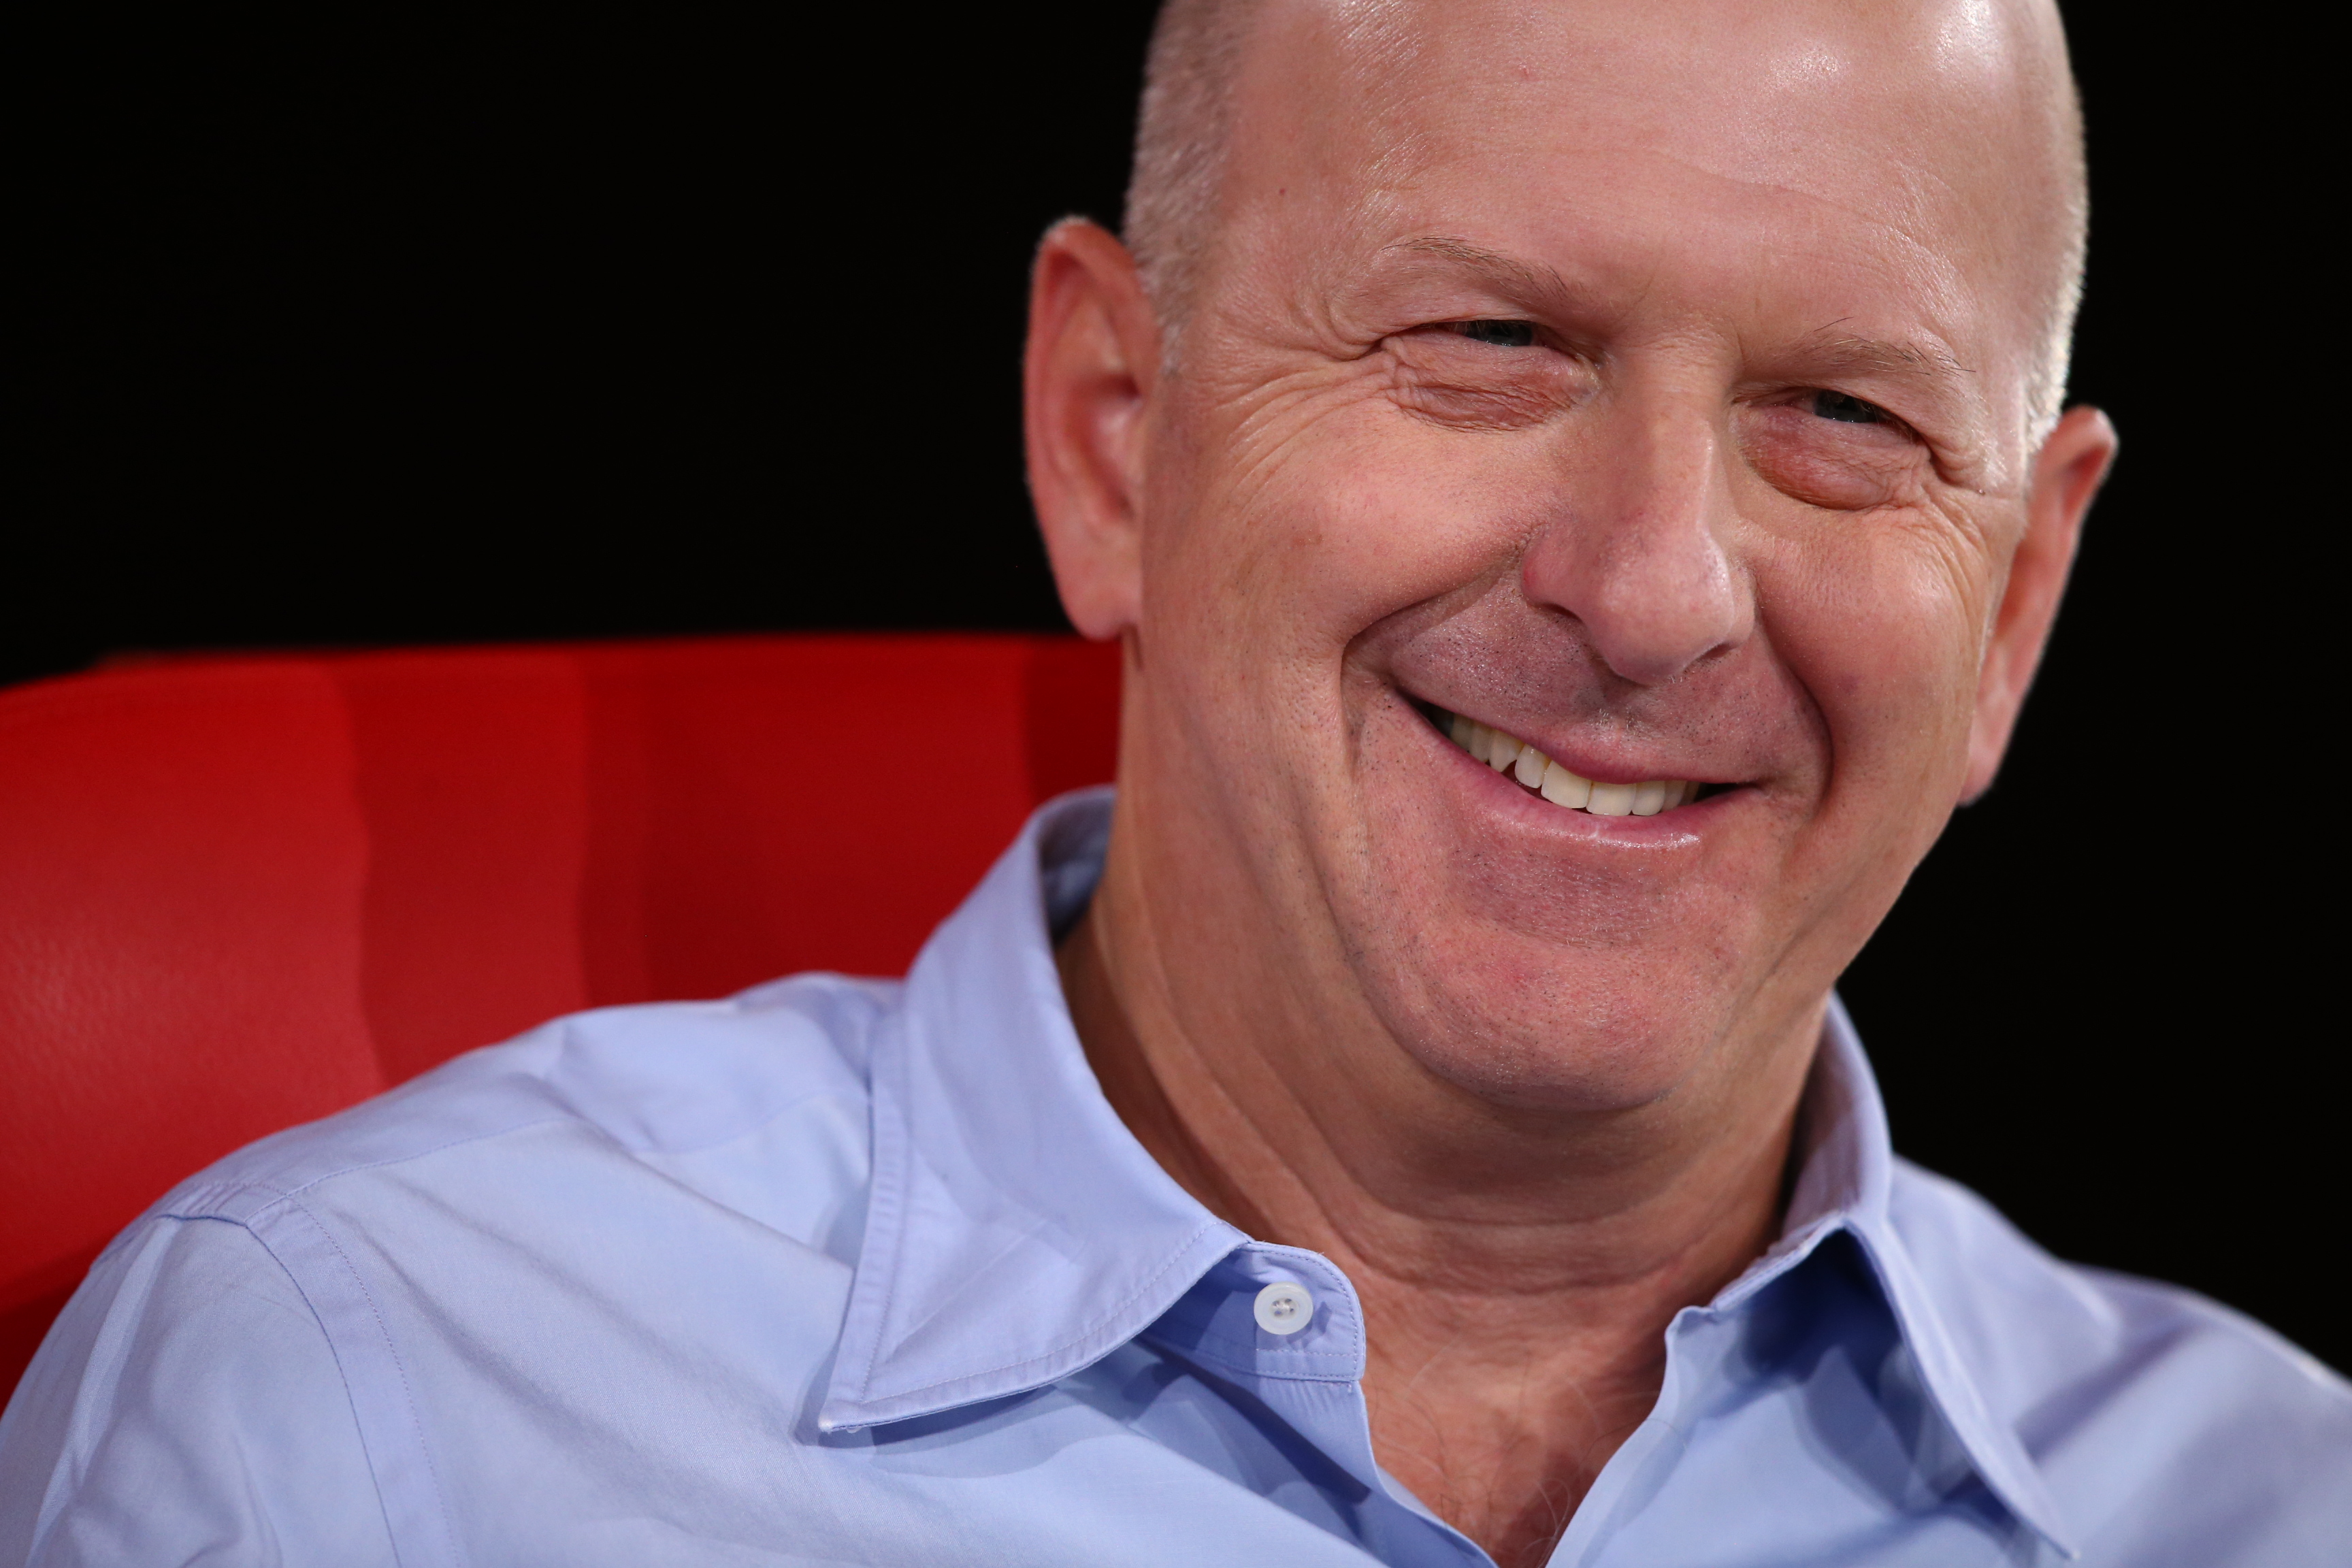 Goldman Sachs CEO David Solomon: the Code Conference interview (transcript)